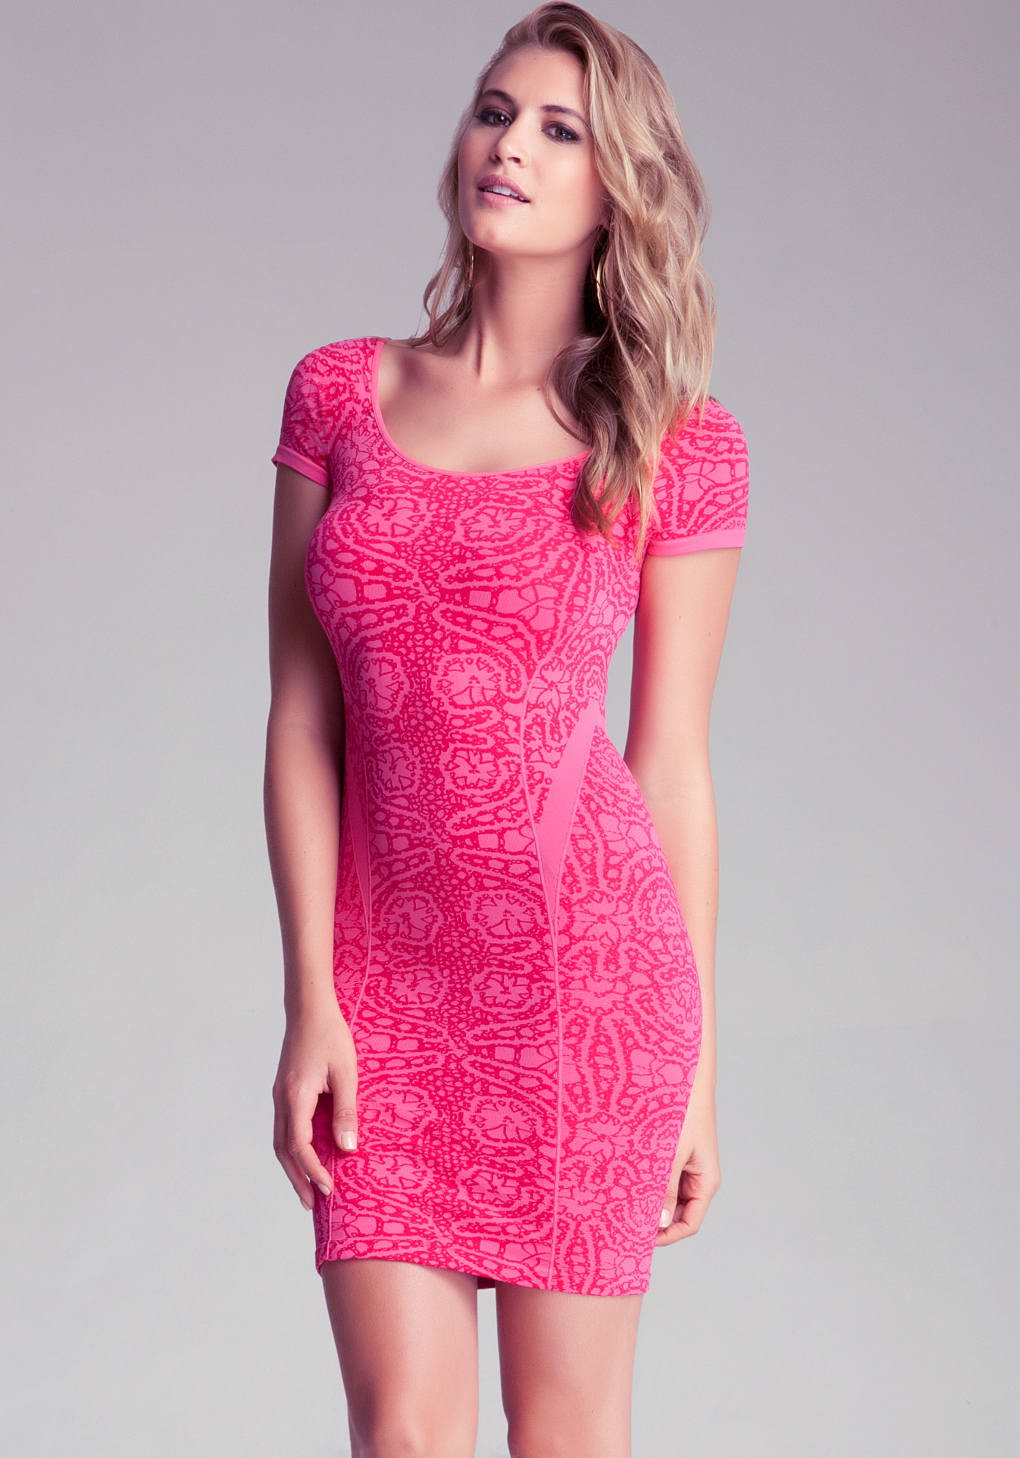 Pink Sweater Dresses for Women | Dress images